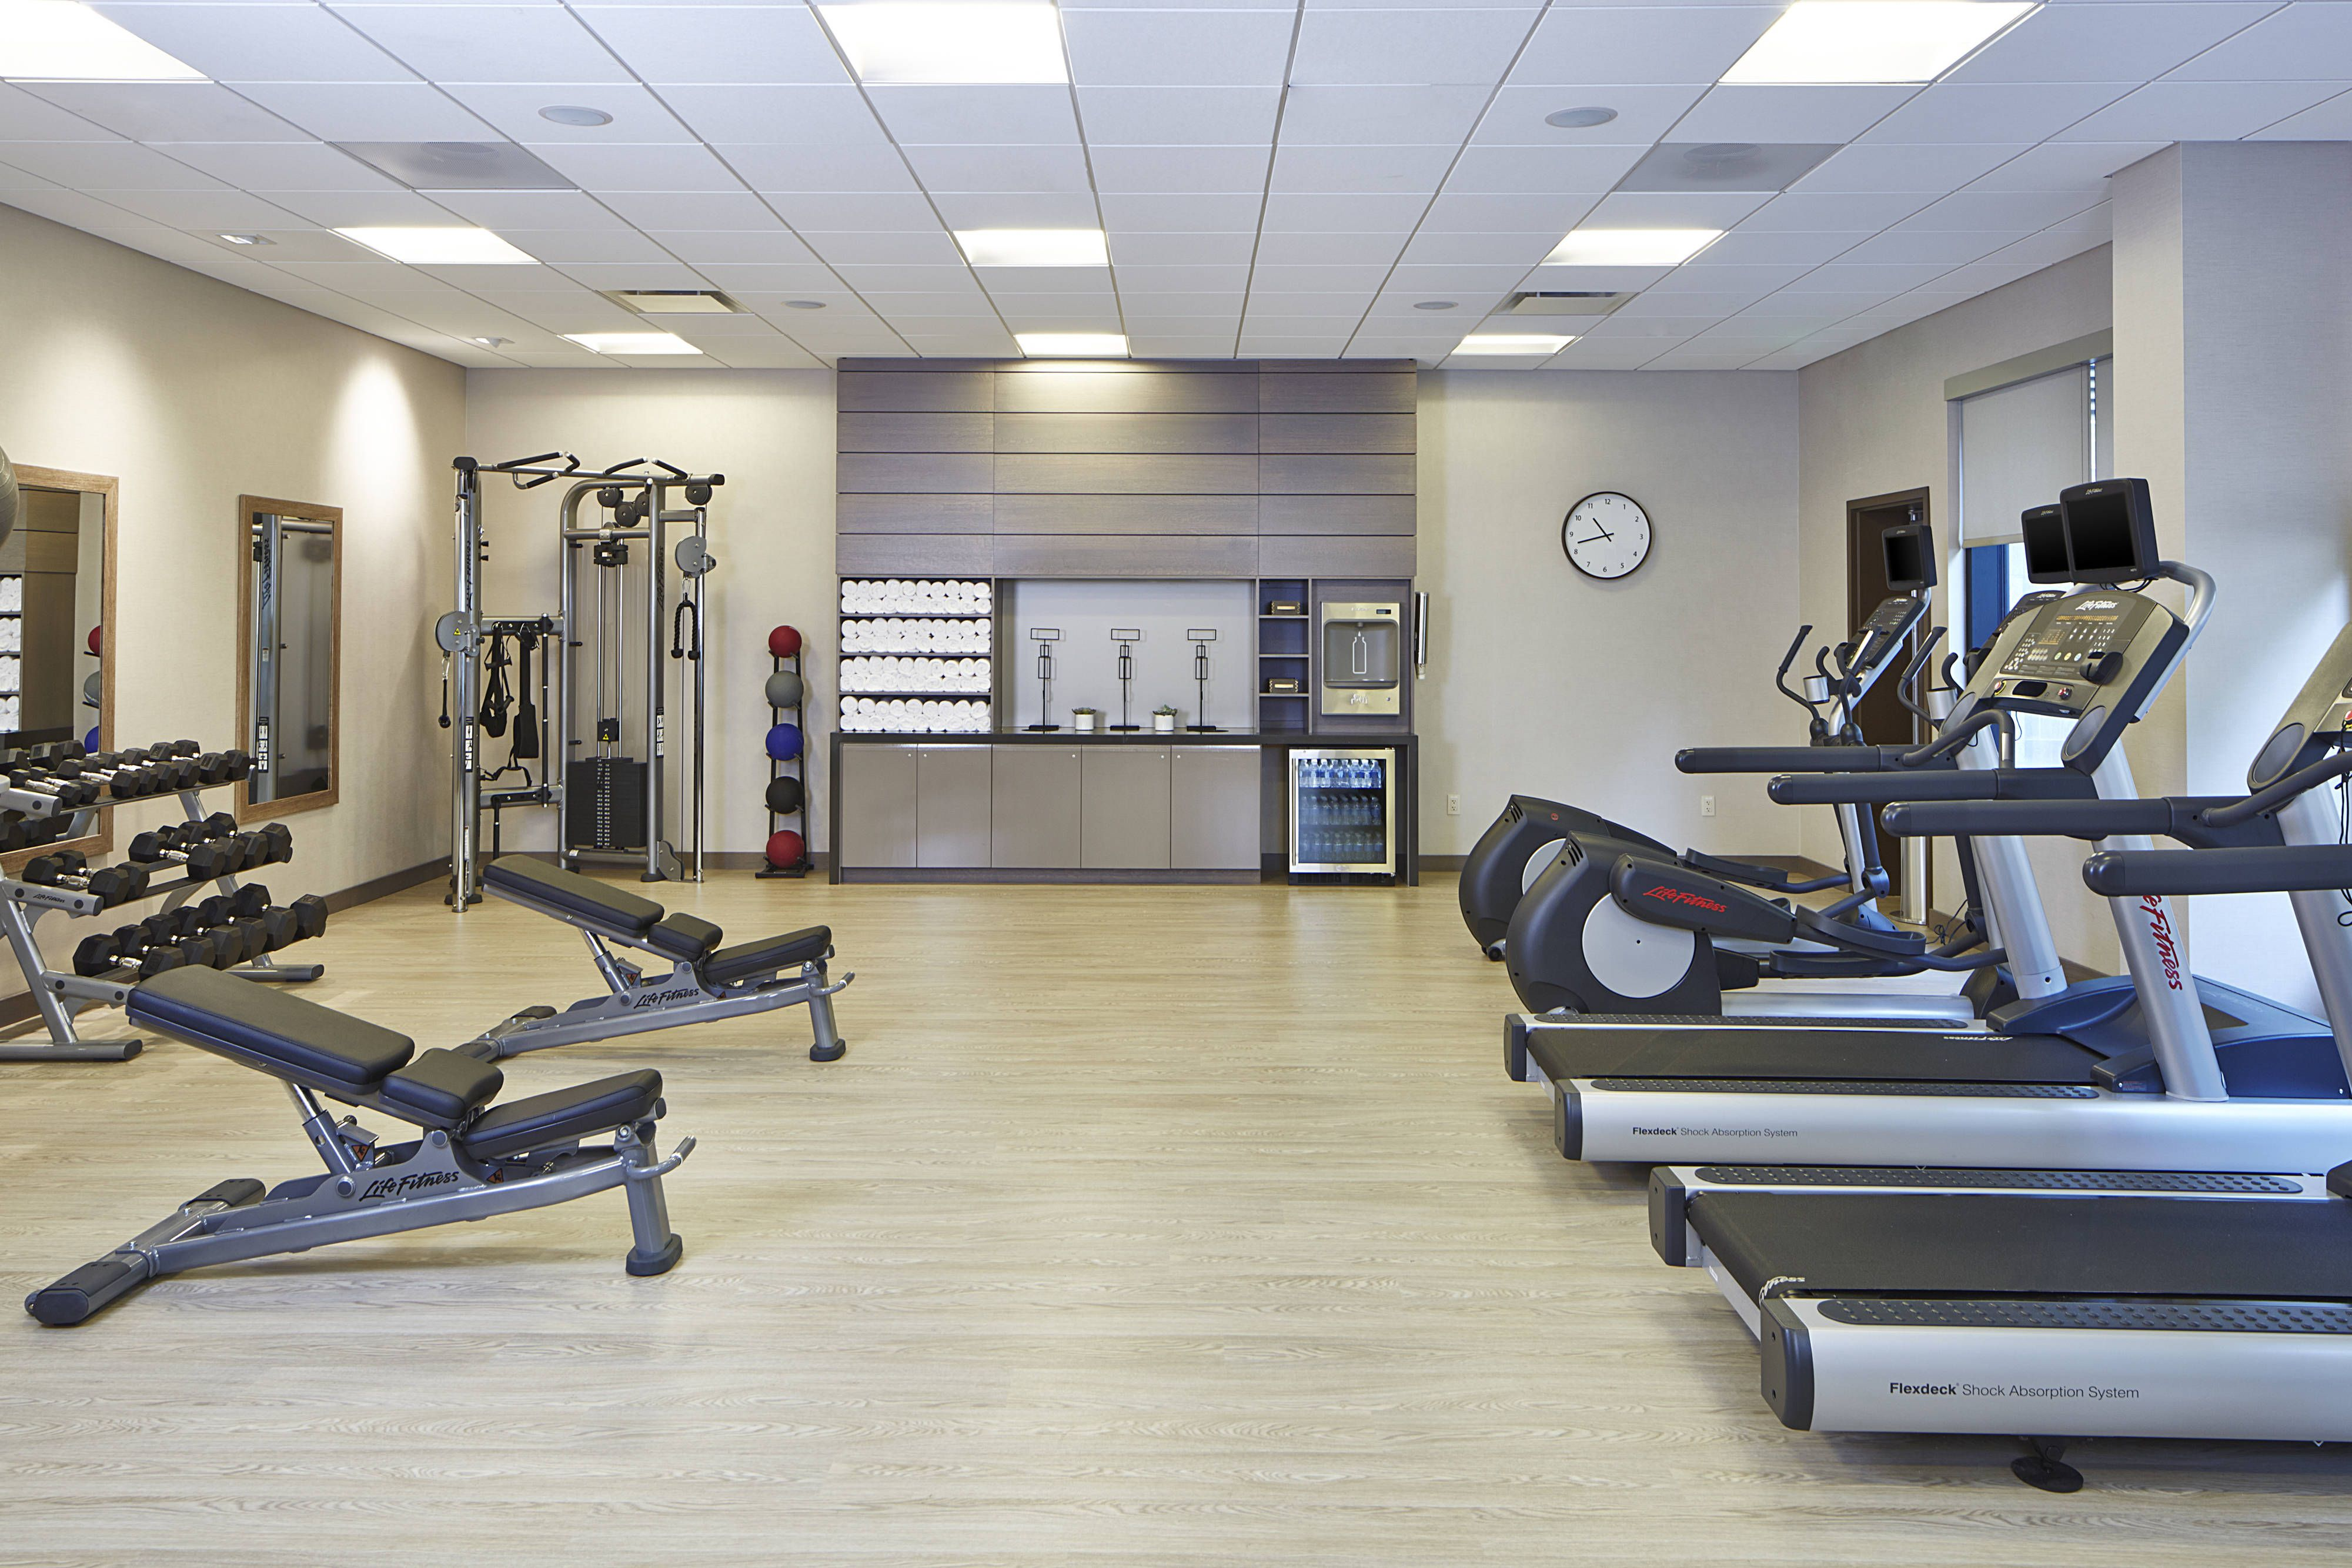 Ac Hotel Seattle Bellevue Downtown Fitness Center Relax Comfort Beautiful Seattle Hotels Ac Hotel Hotel